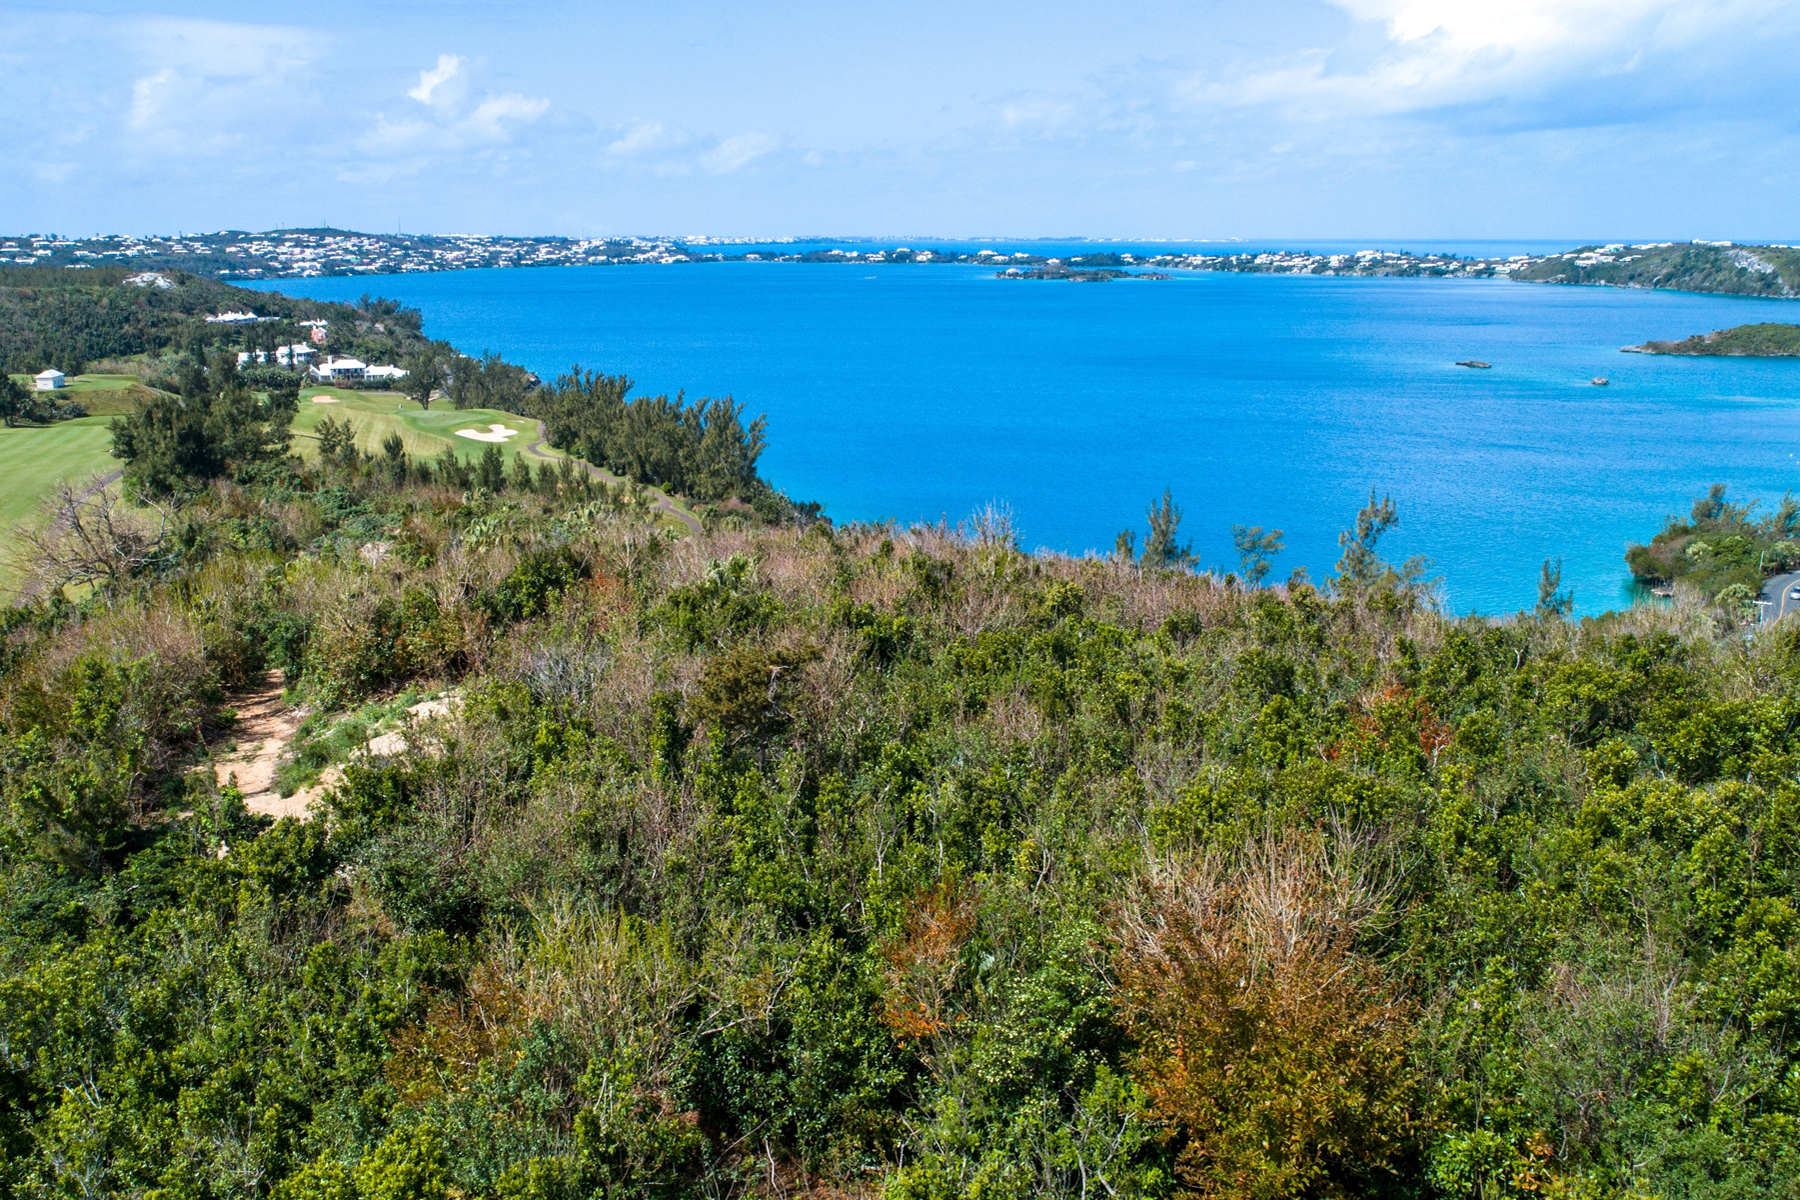 Land for Sale at Paynters Hill Site 2A - Home Site 3 Paynter's Hill St Georges Parish, Bermuda HS02 Bermuda